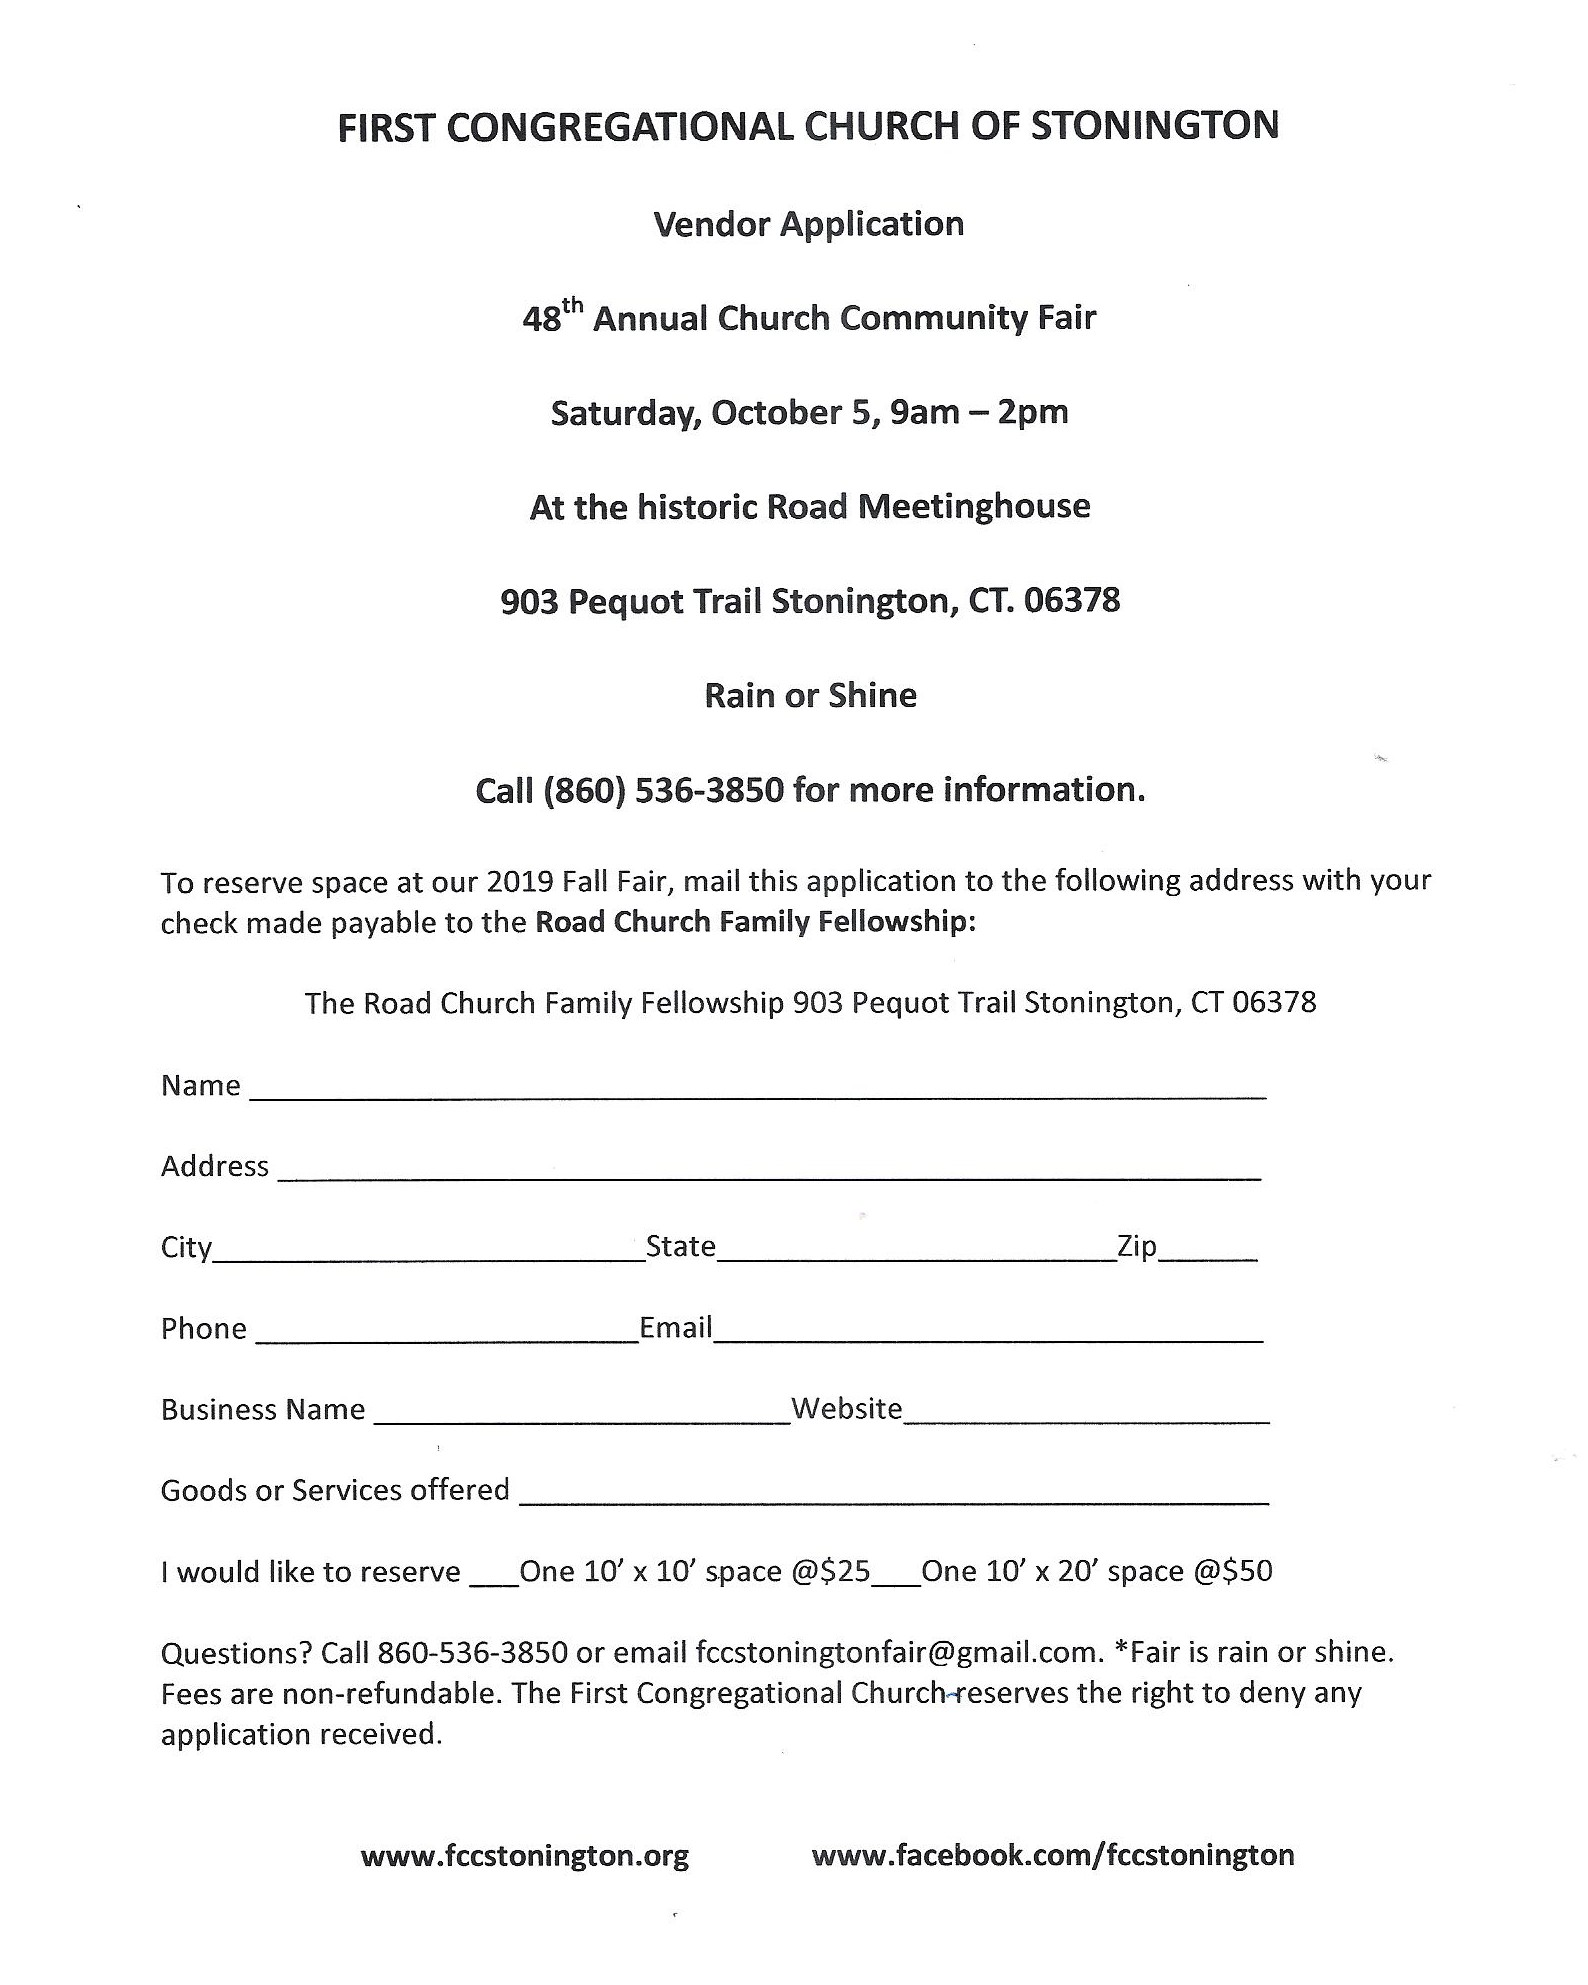 Vendor Application 2019 001.jpg